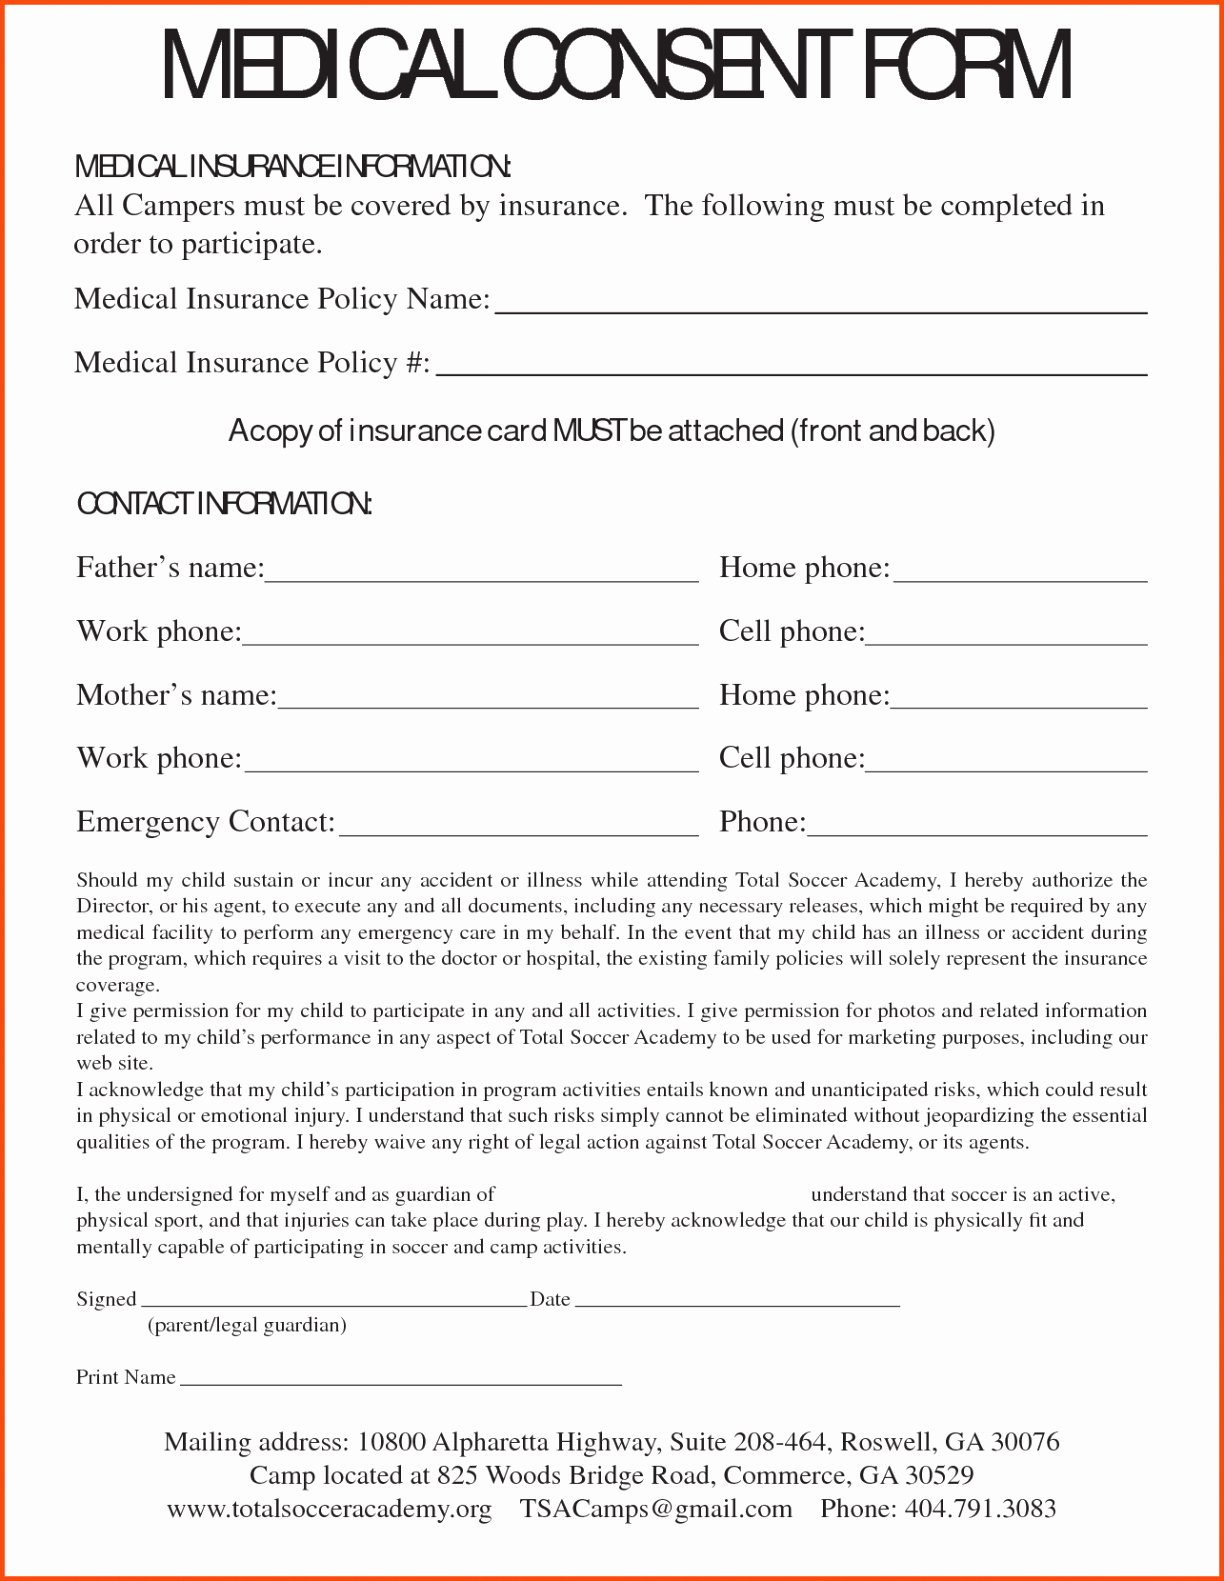 Medical Consent form Template Free Luxury Medical Consent Letter for Grandparents Template